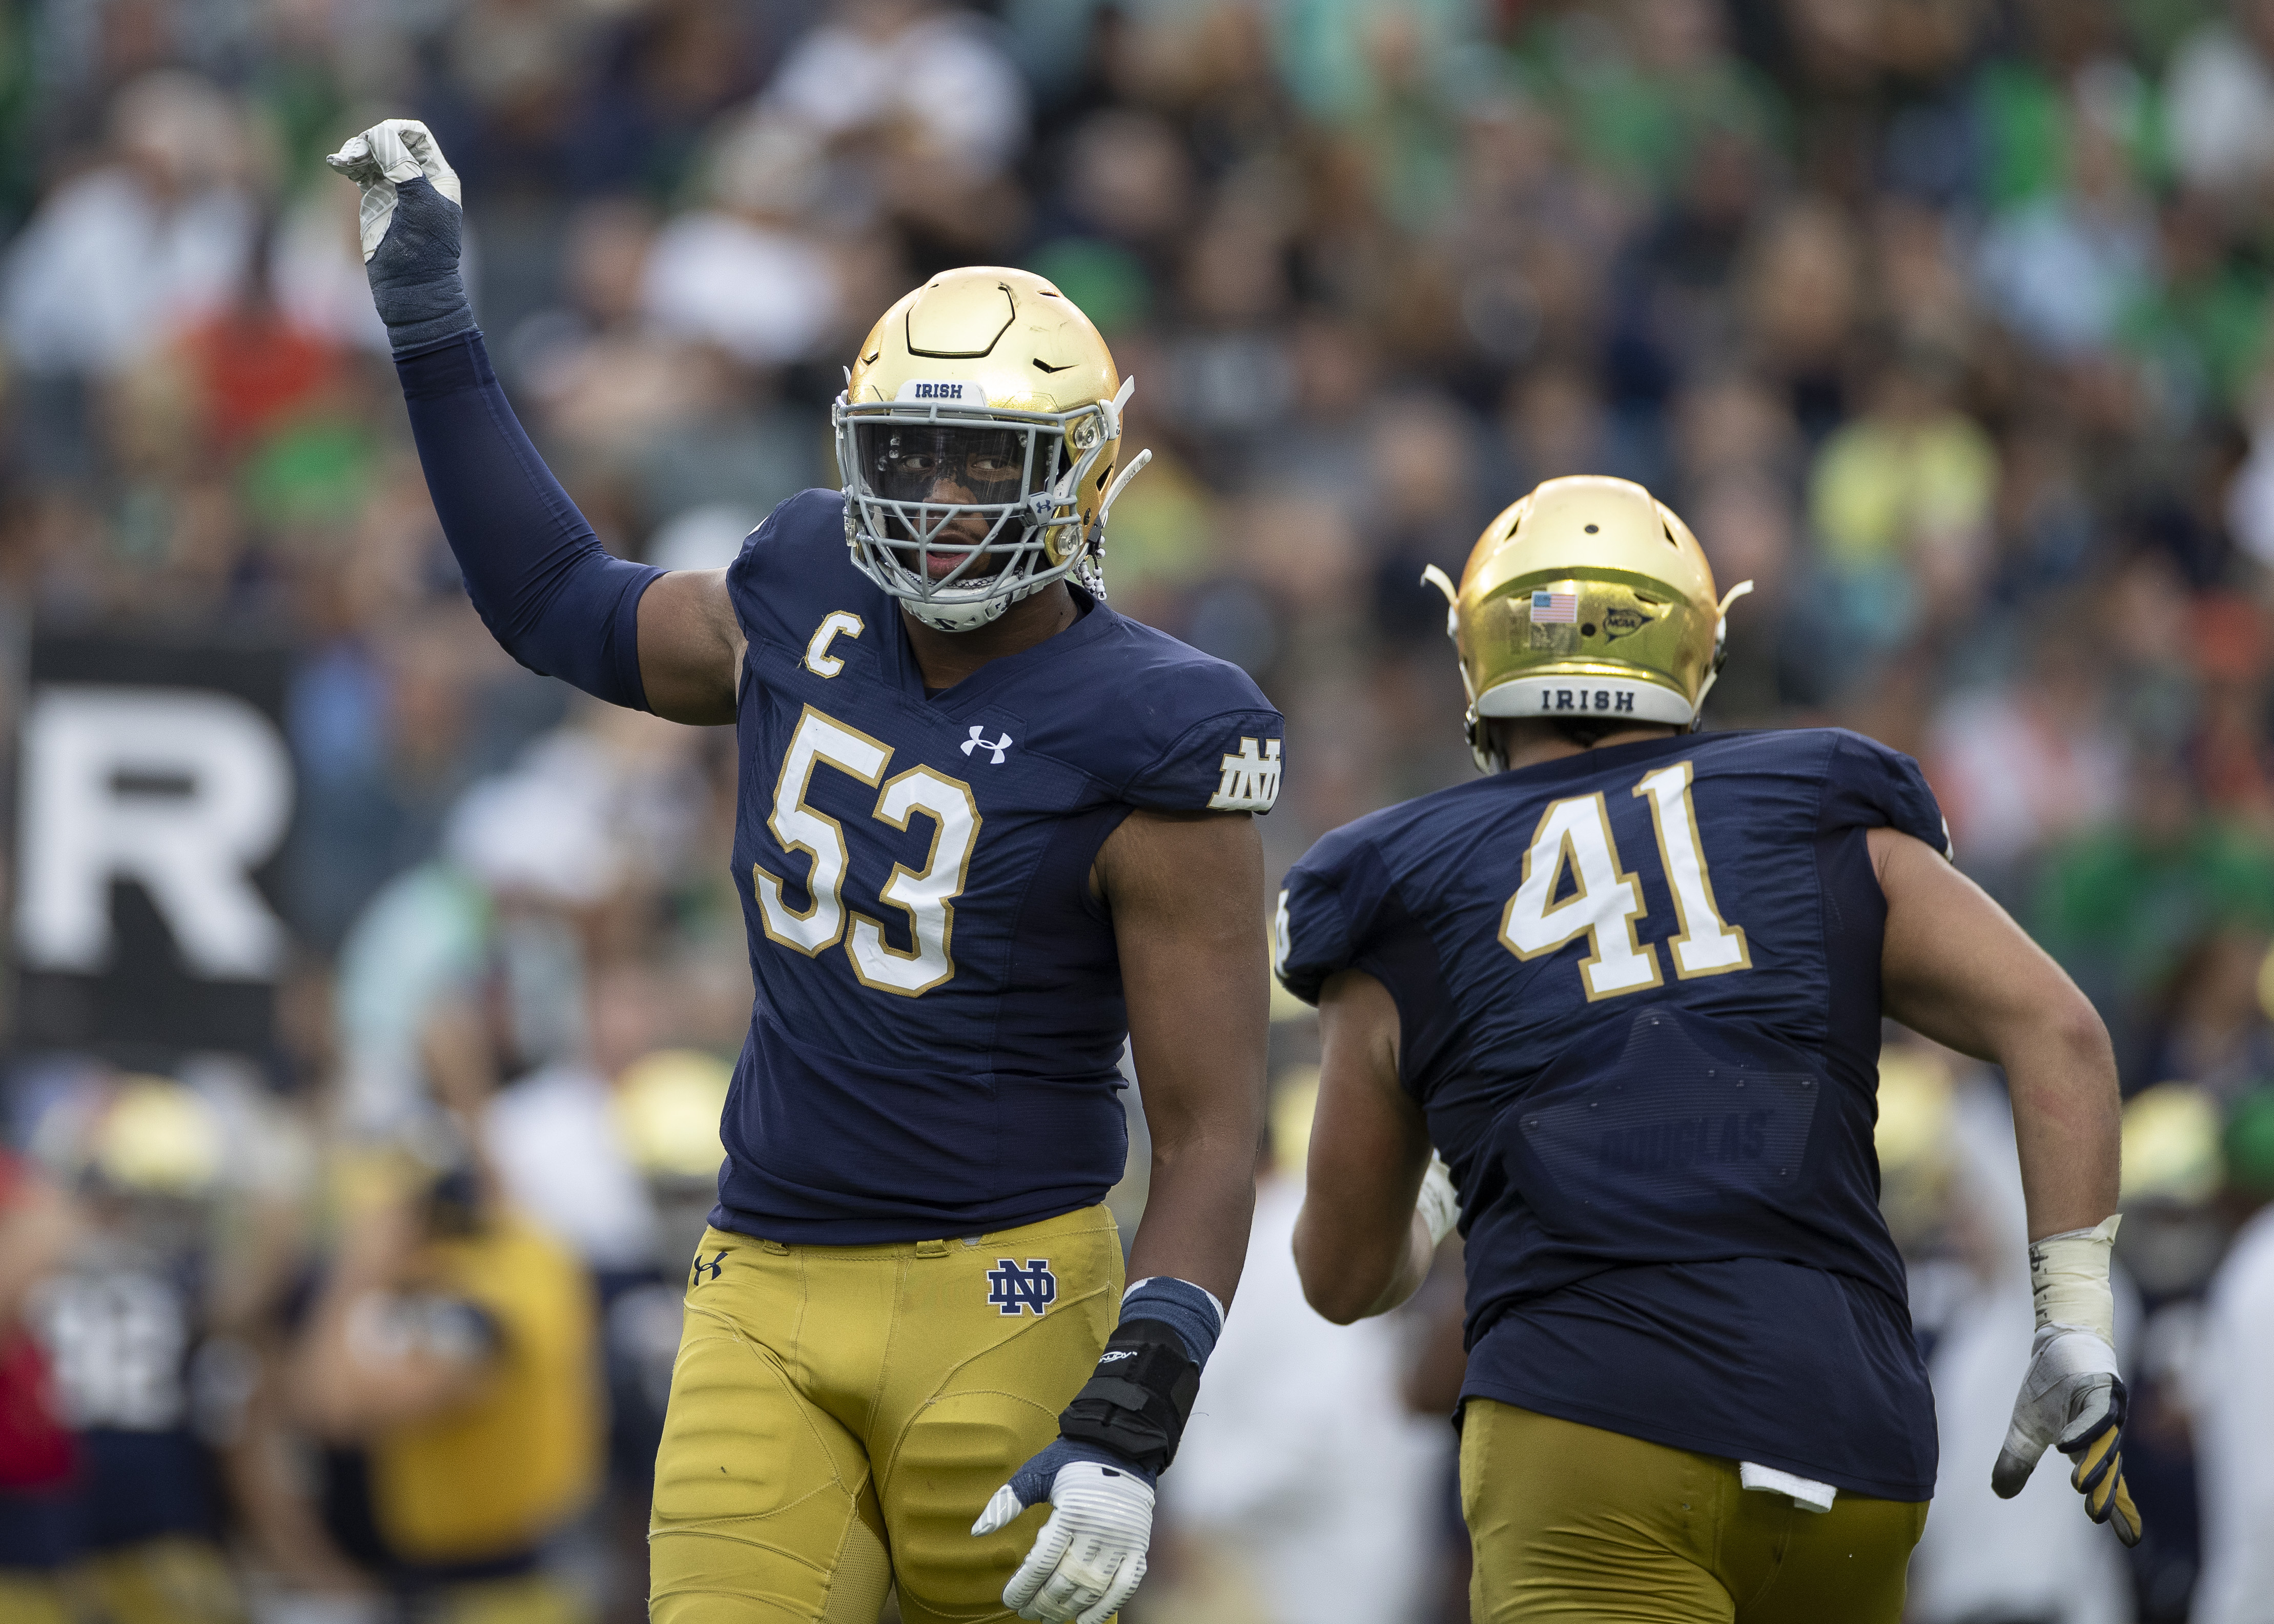 COLLEGE FOOTBALL: SEP 28 Virginia at Notre Dame